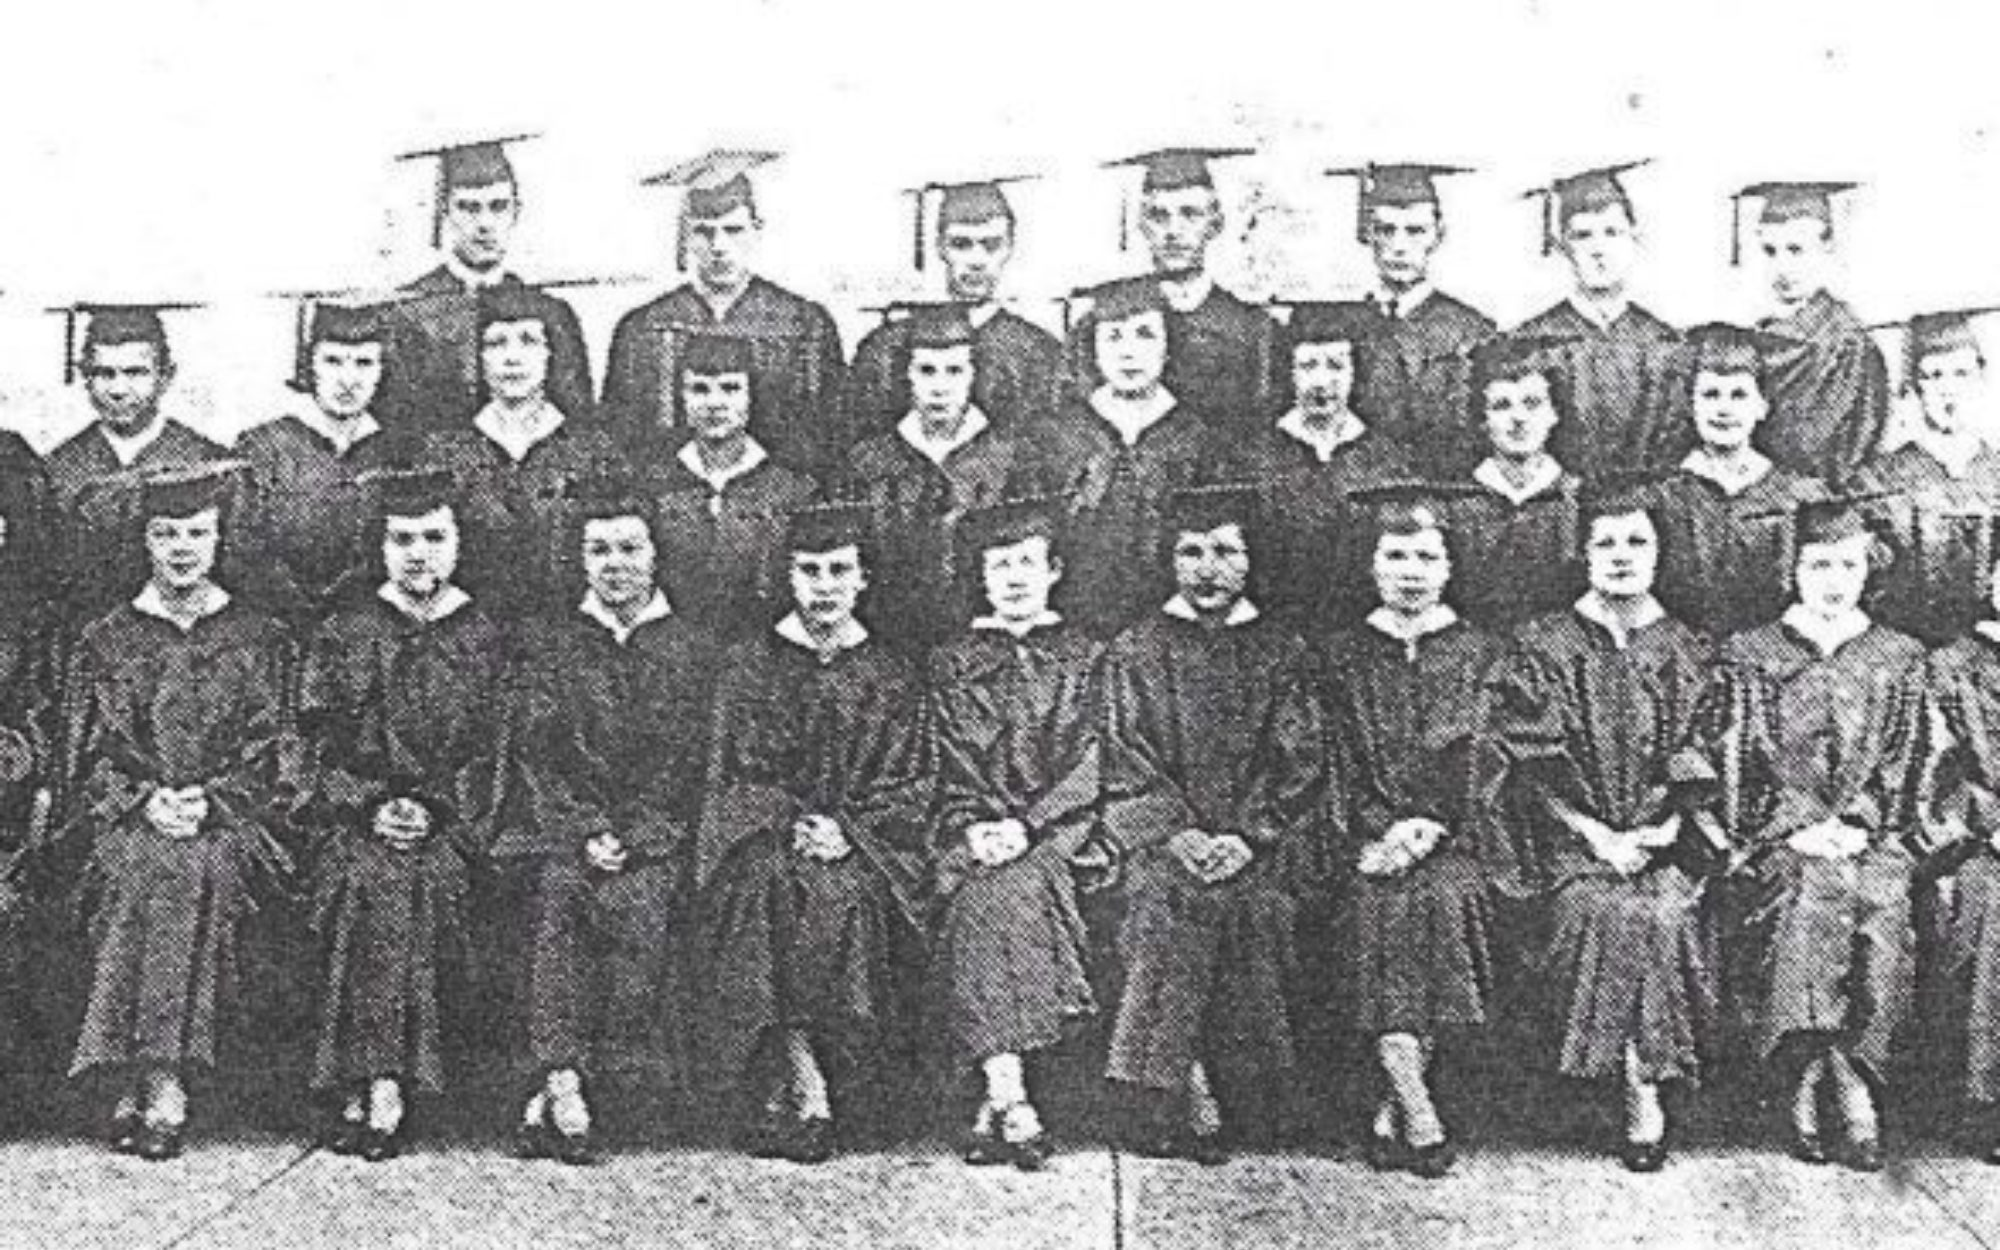 Group of high school students wearing graduation gowns